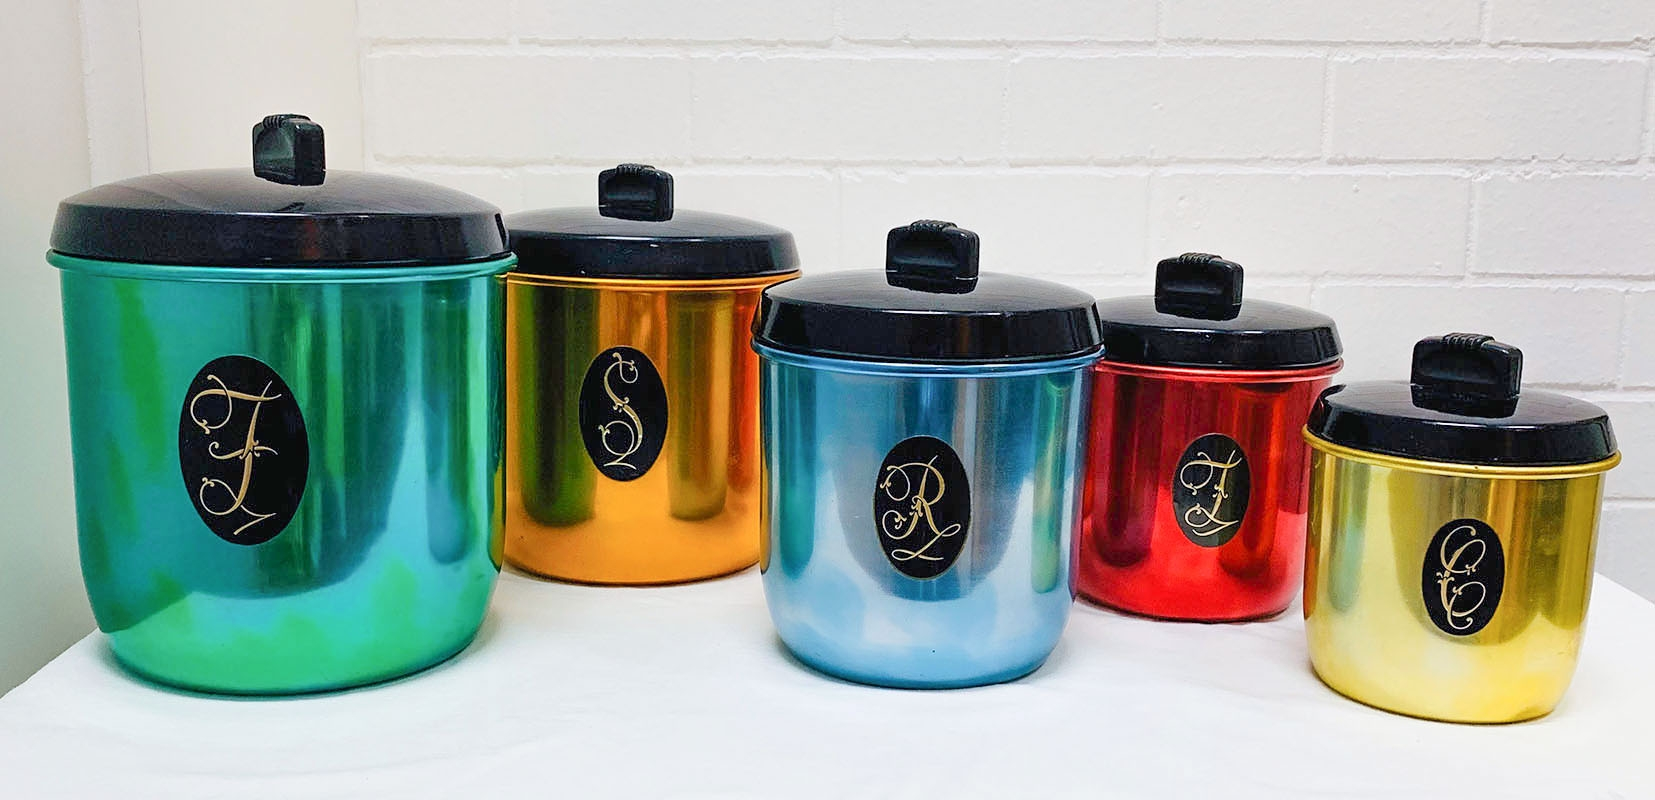 Anodised canisters. Manufacturers including Raeco, Colorware, Kartell, Model Maid. Canister sets, bakelite, aluminium, sugar bowls, teapots, stacking travel cups, kitchenware, pudding bowl, kettle, soda syphon, ice buckets and fondue sets